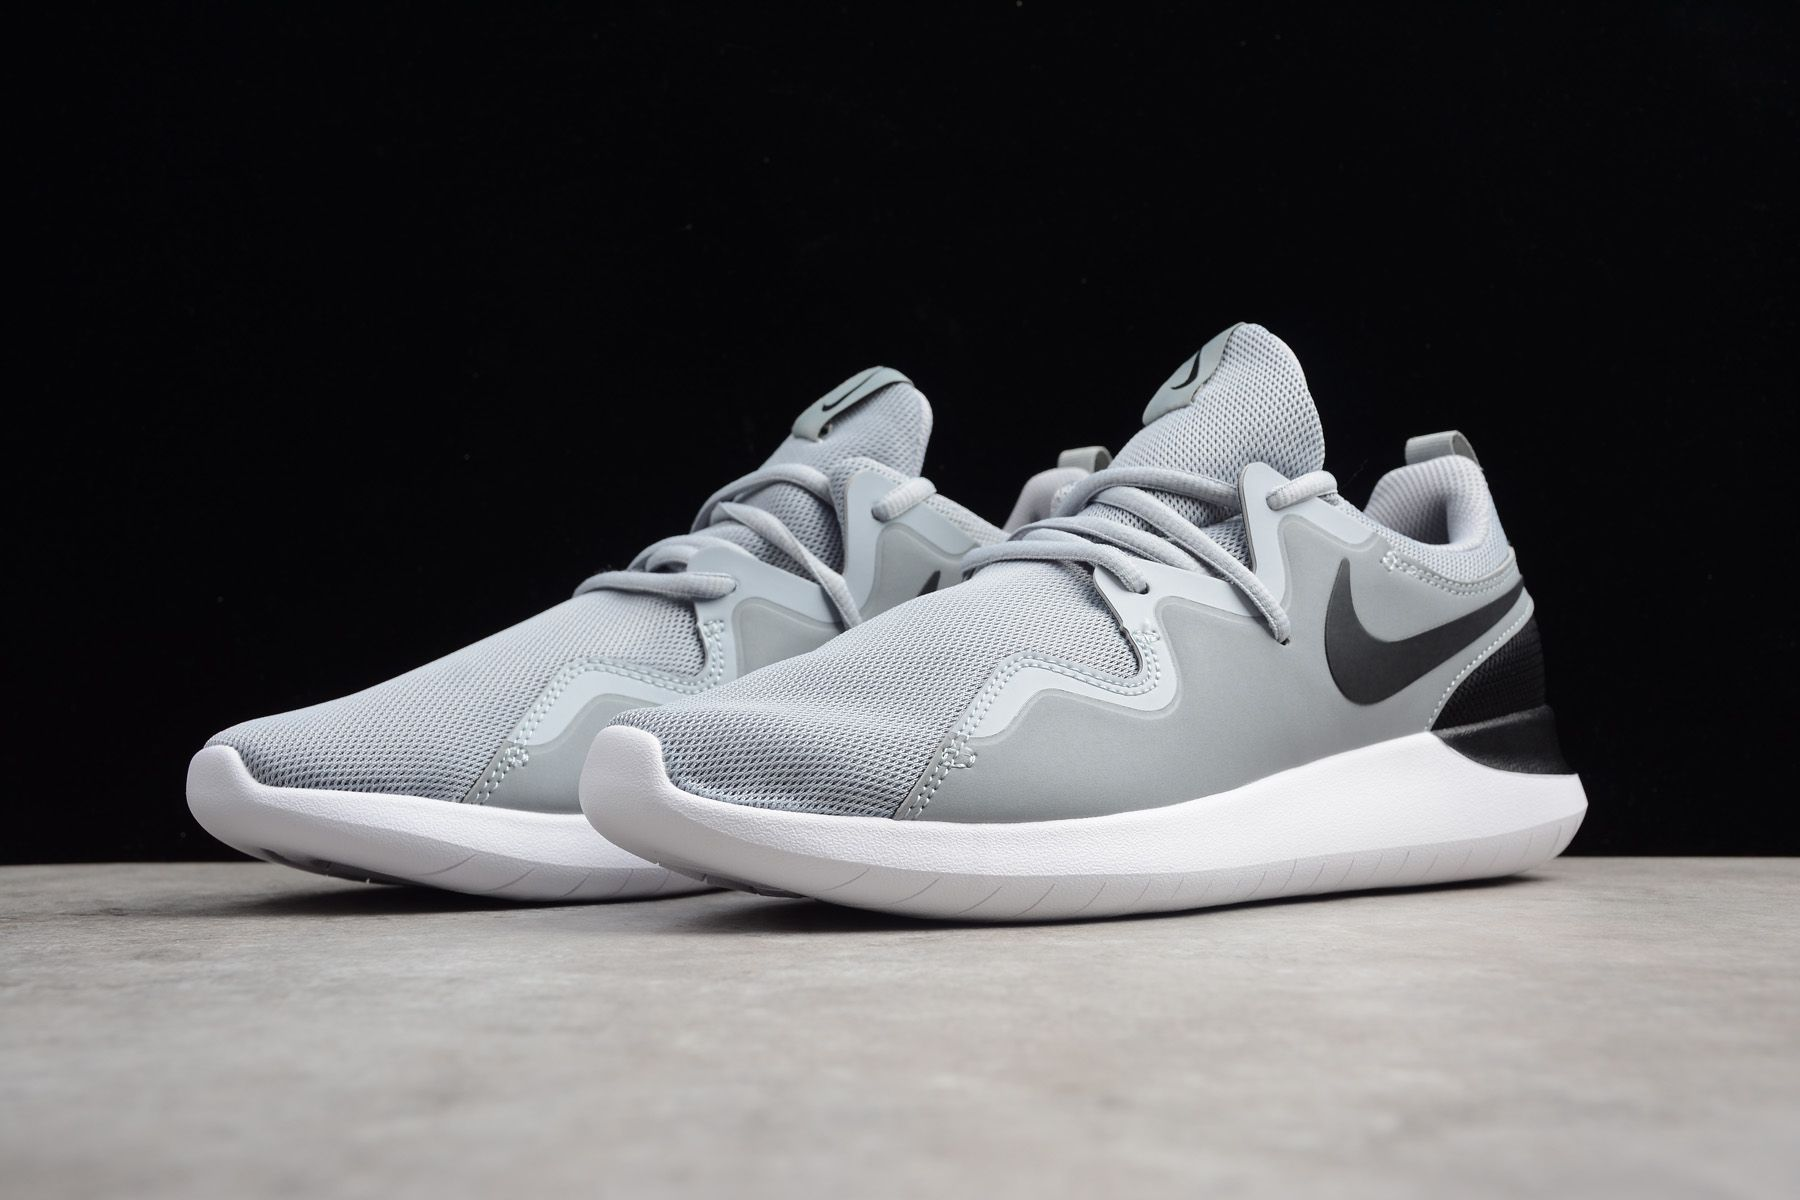 reputable site 7a72b 79e8a Men s Nike Tessen Wolf Grey Black-White Shoes AA2160-002